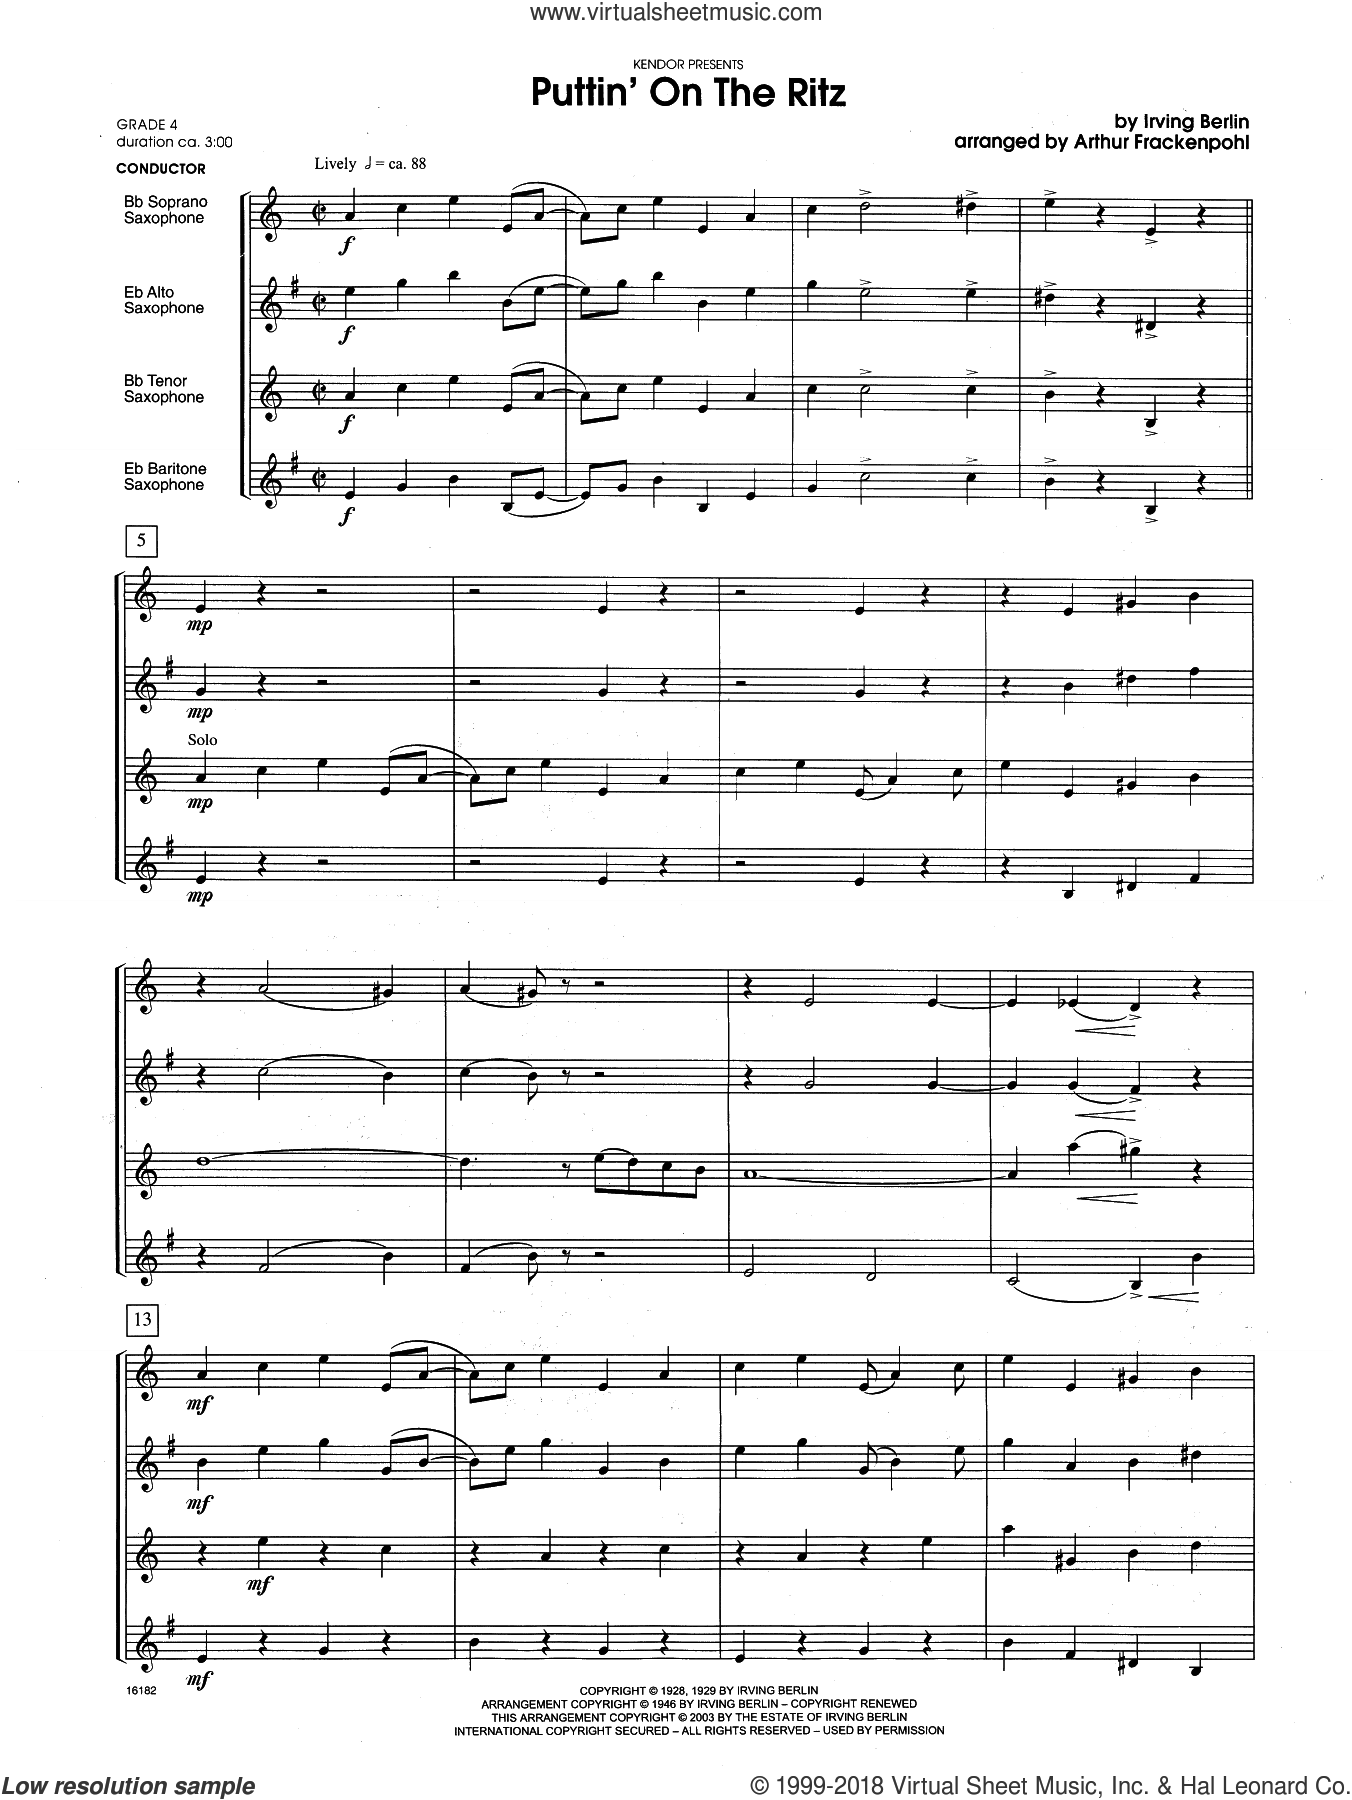 Puttin' on the Ritz (COMPLETE) sheet music for saxophone quartet by Irving Berlin and Arthur Frackenpohl, intermediate skill level